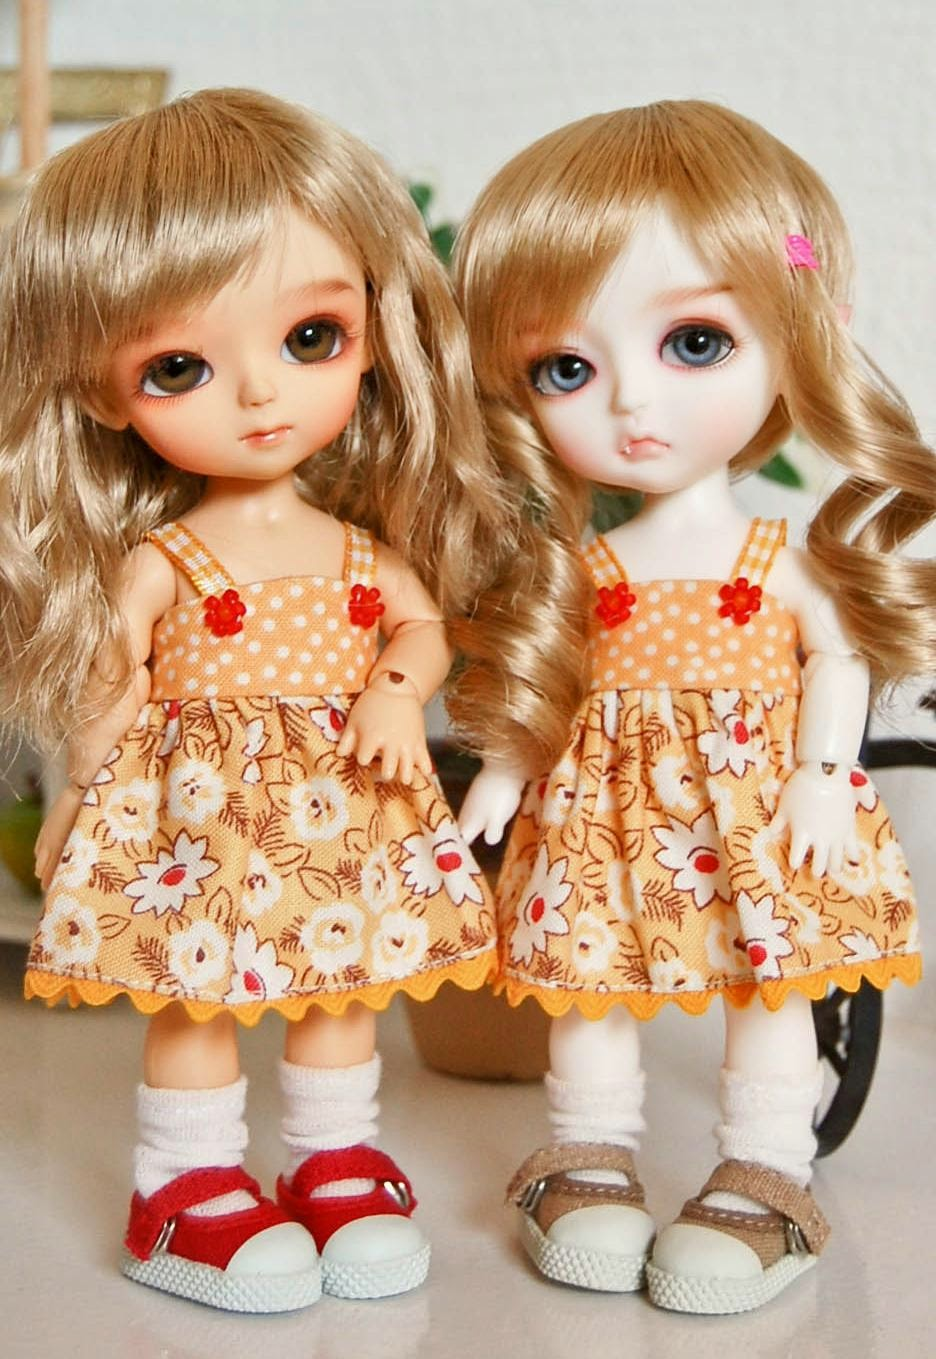 Chimney Bells: FreeCute Twins Barbie Dolls HD Wallpaper